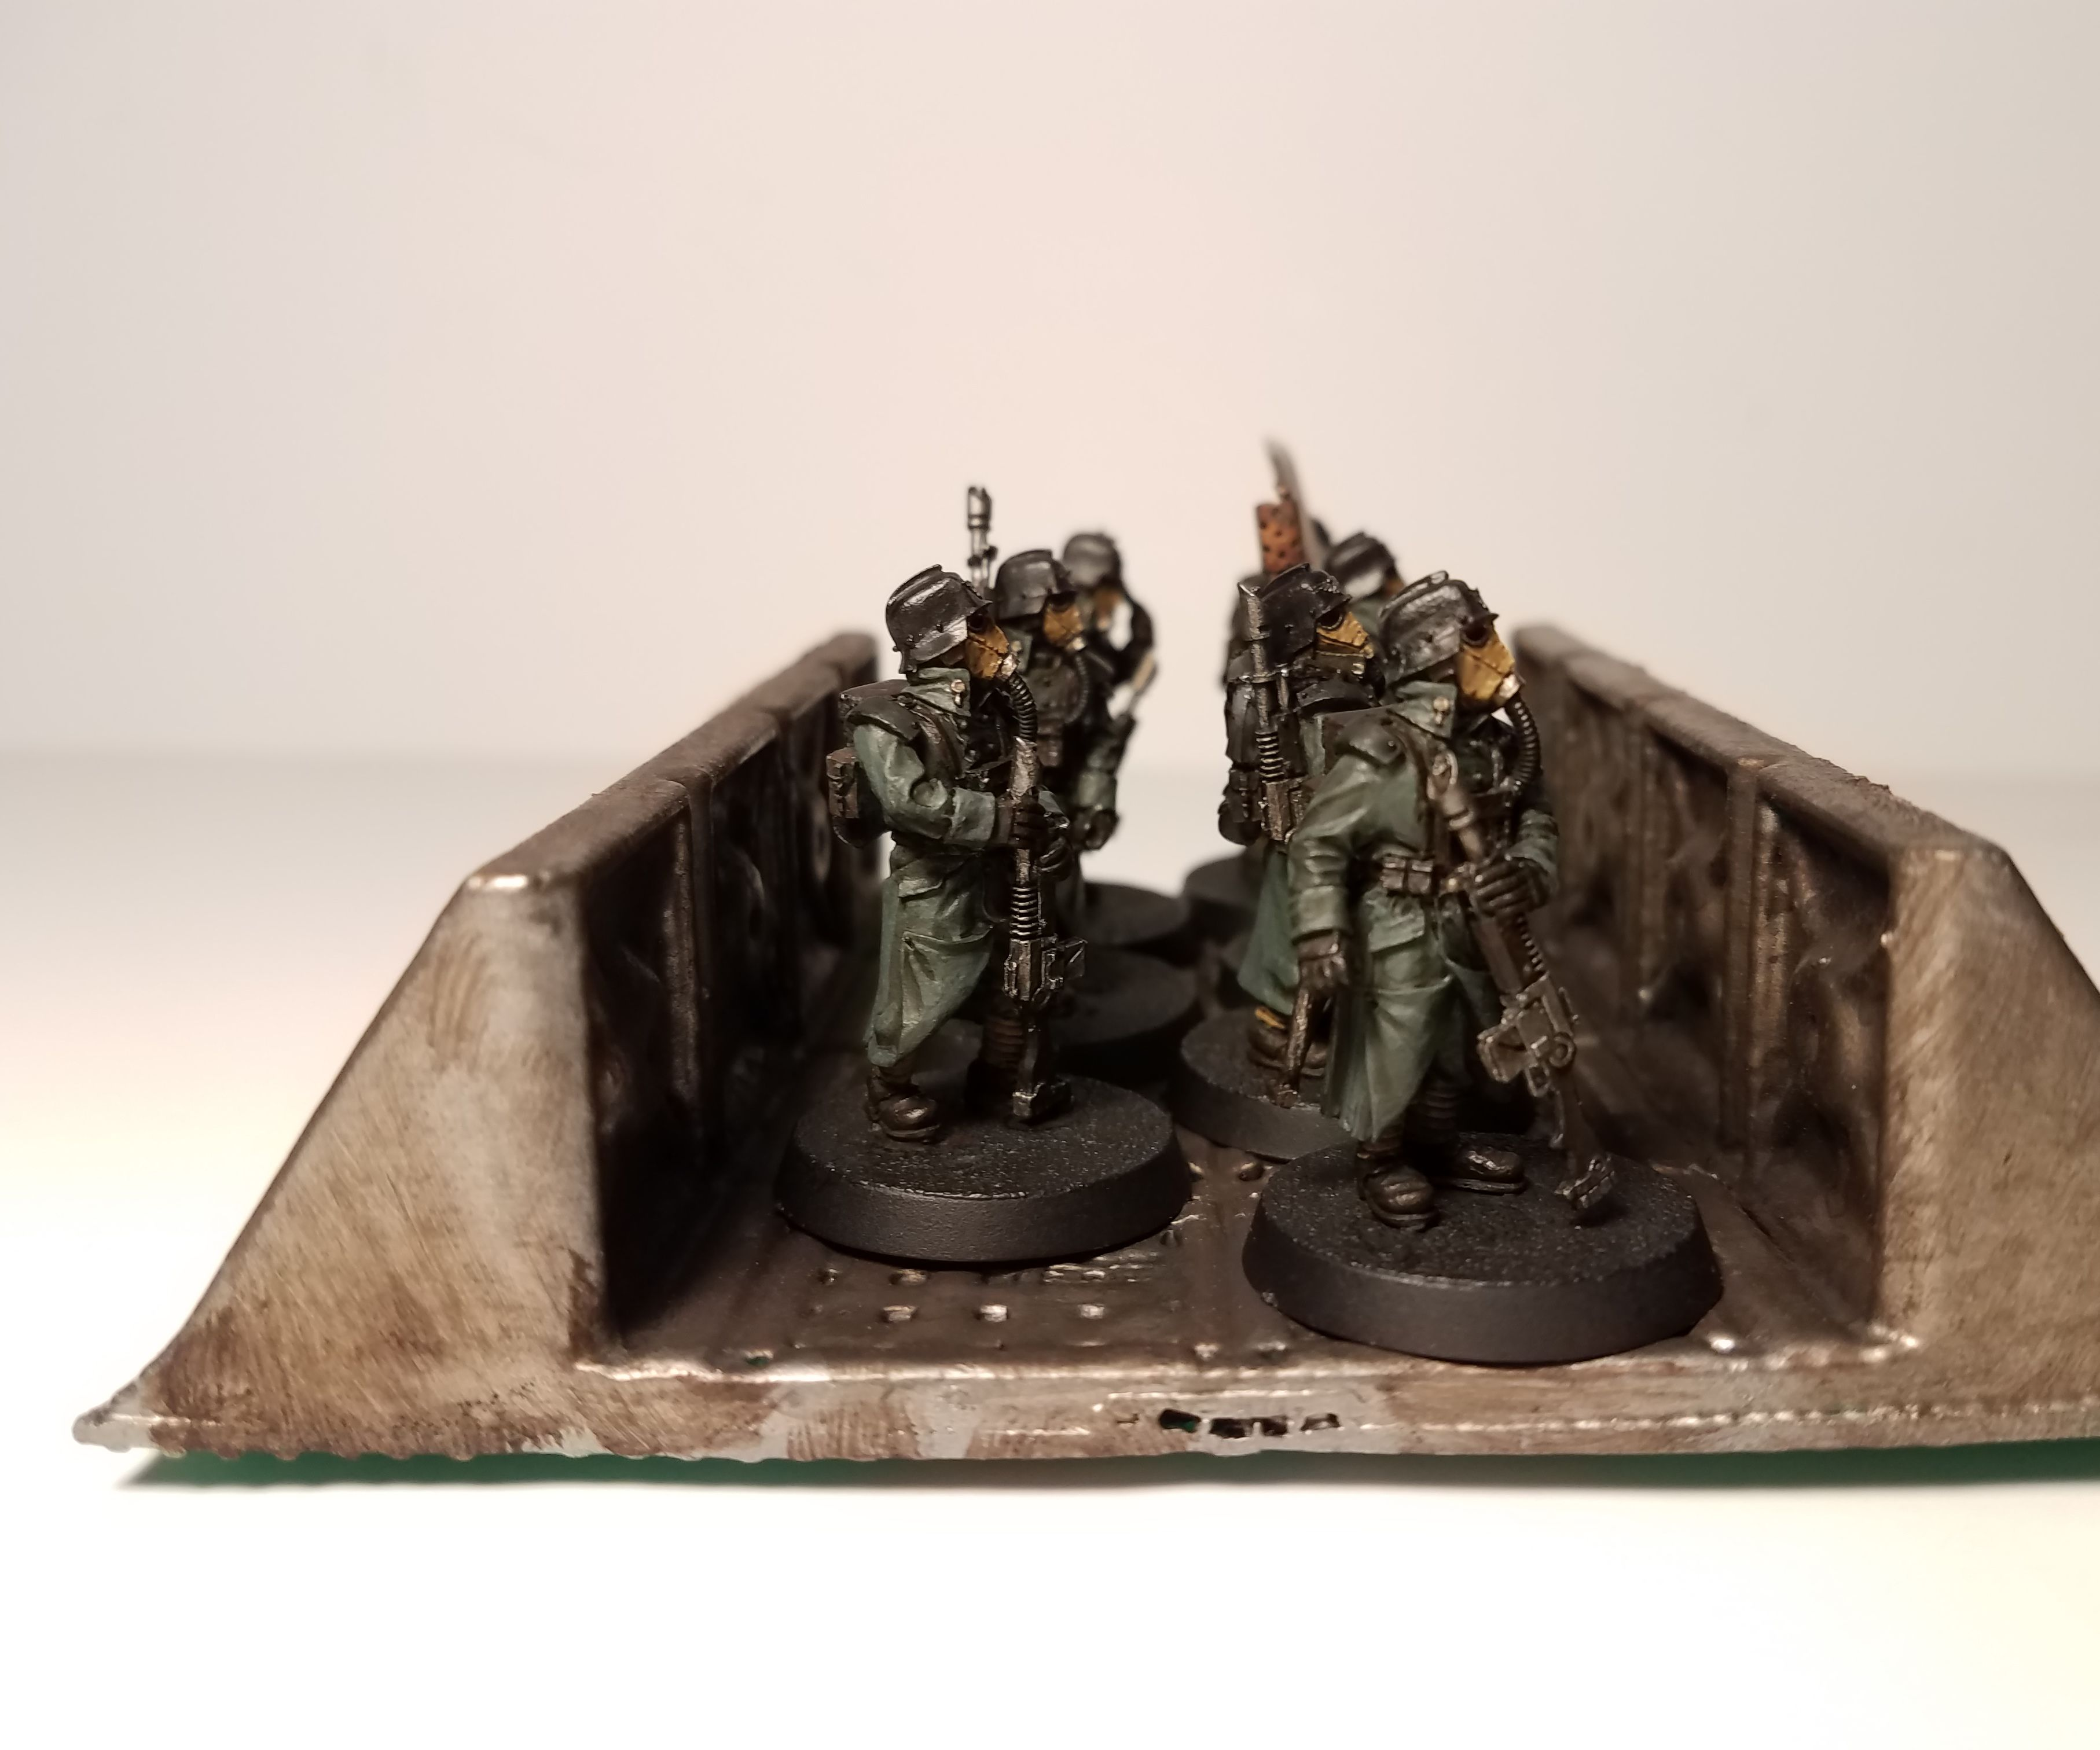 3D-Printed Wargaming Terrain: 6 Steps (with Pictures)